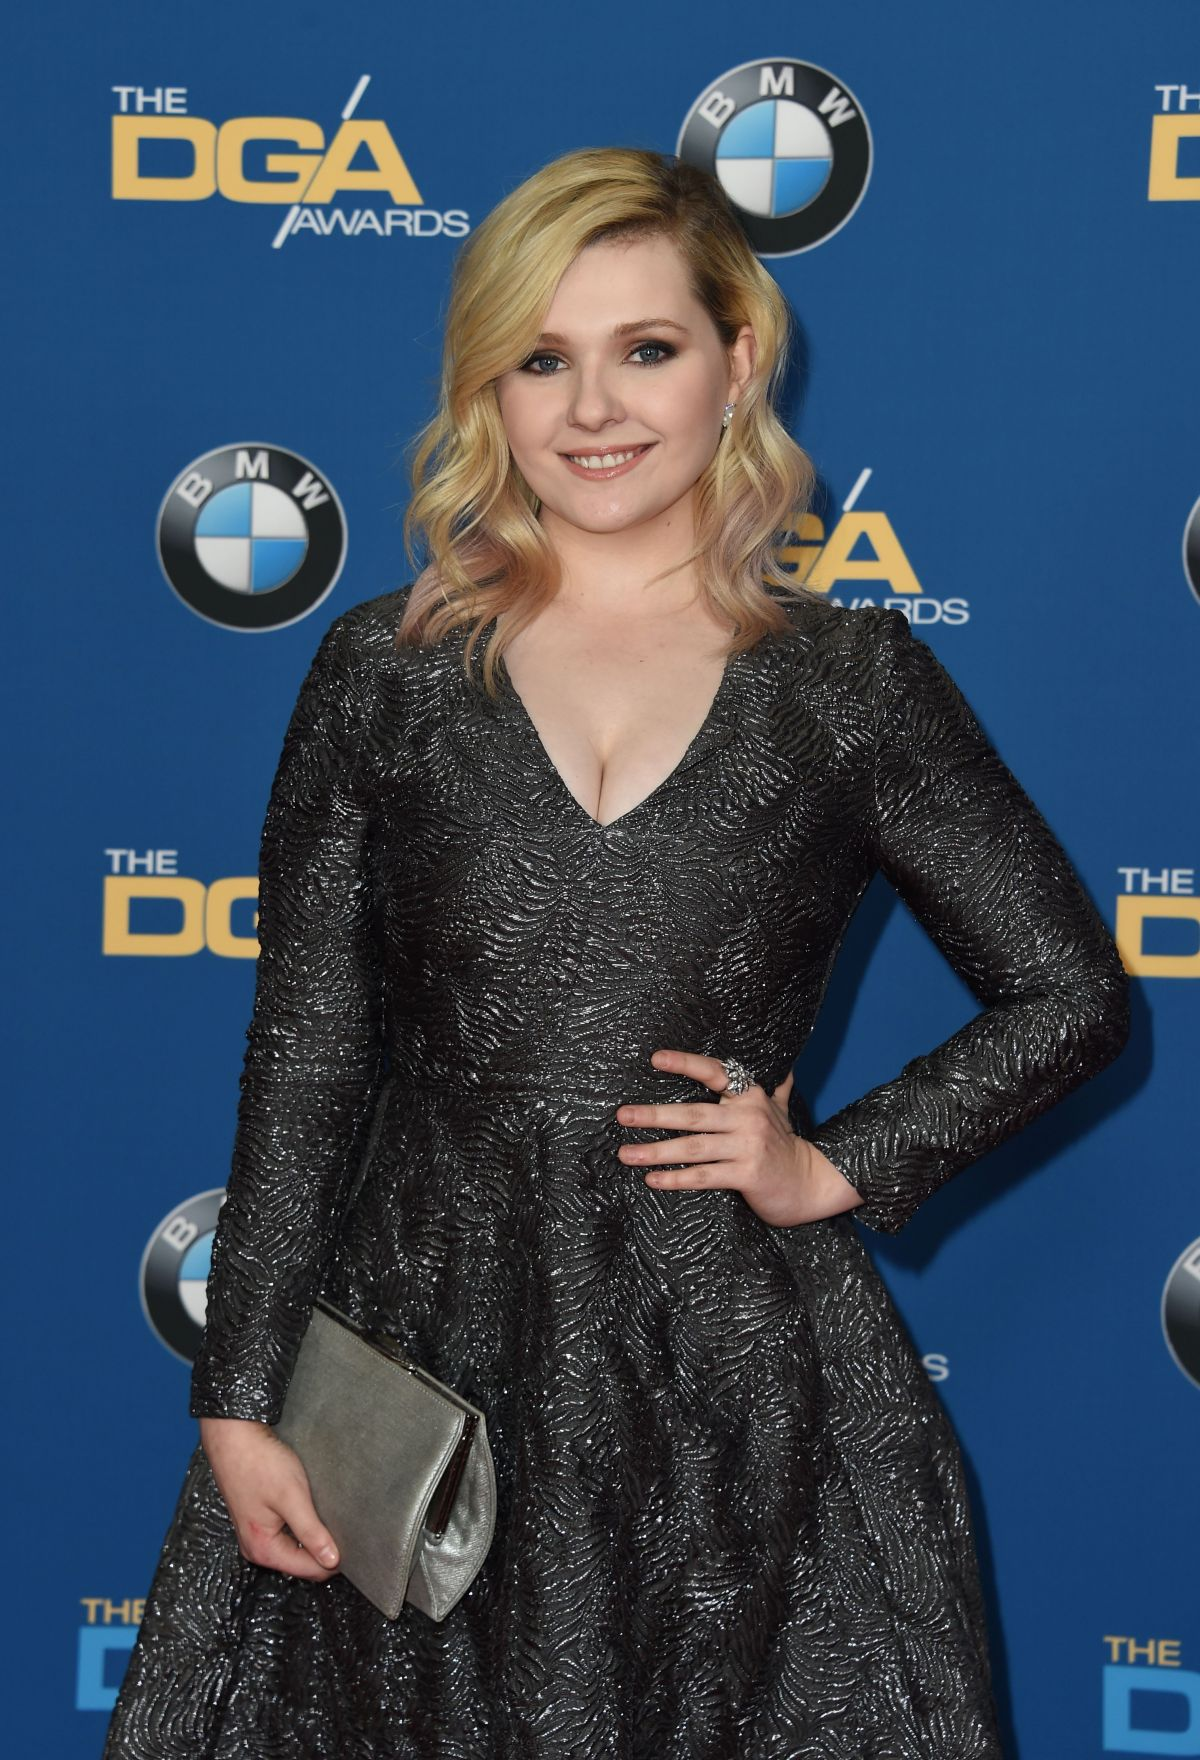 The 21-year old daughter of father Michael Breslin and mother Kim Breslin, 155 cm tall Abigail Breslin in 2017 photo